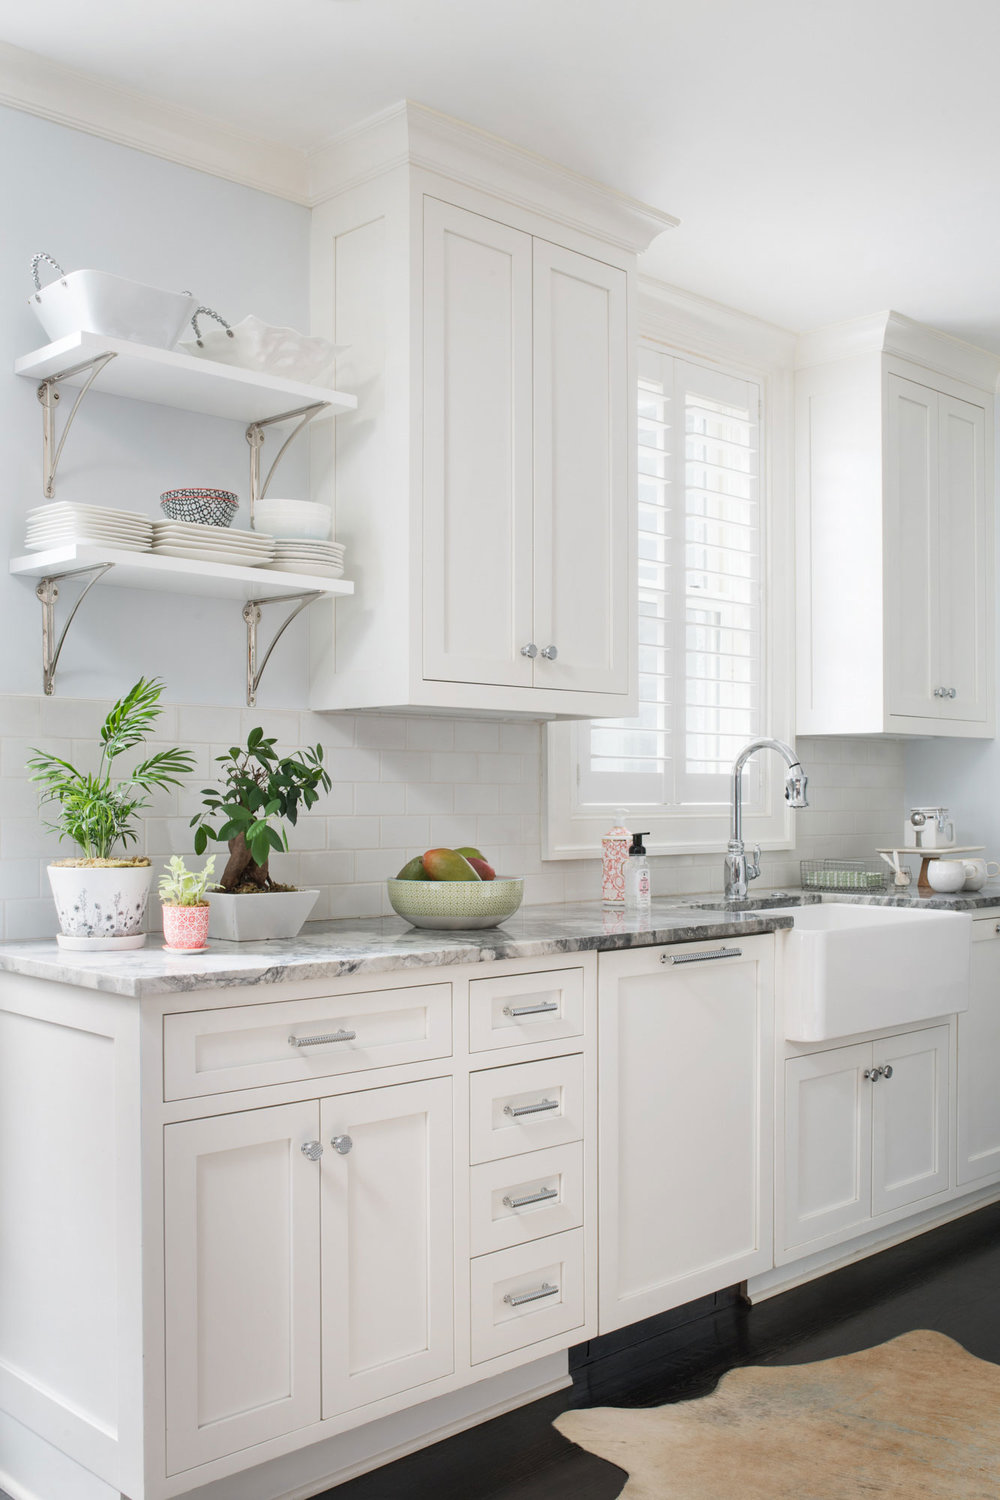 white-kitchen-sink.jpg